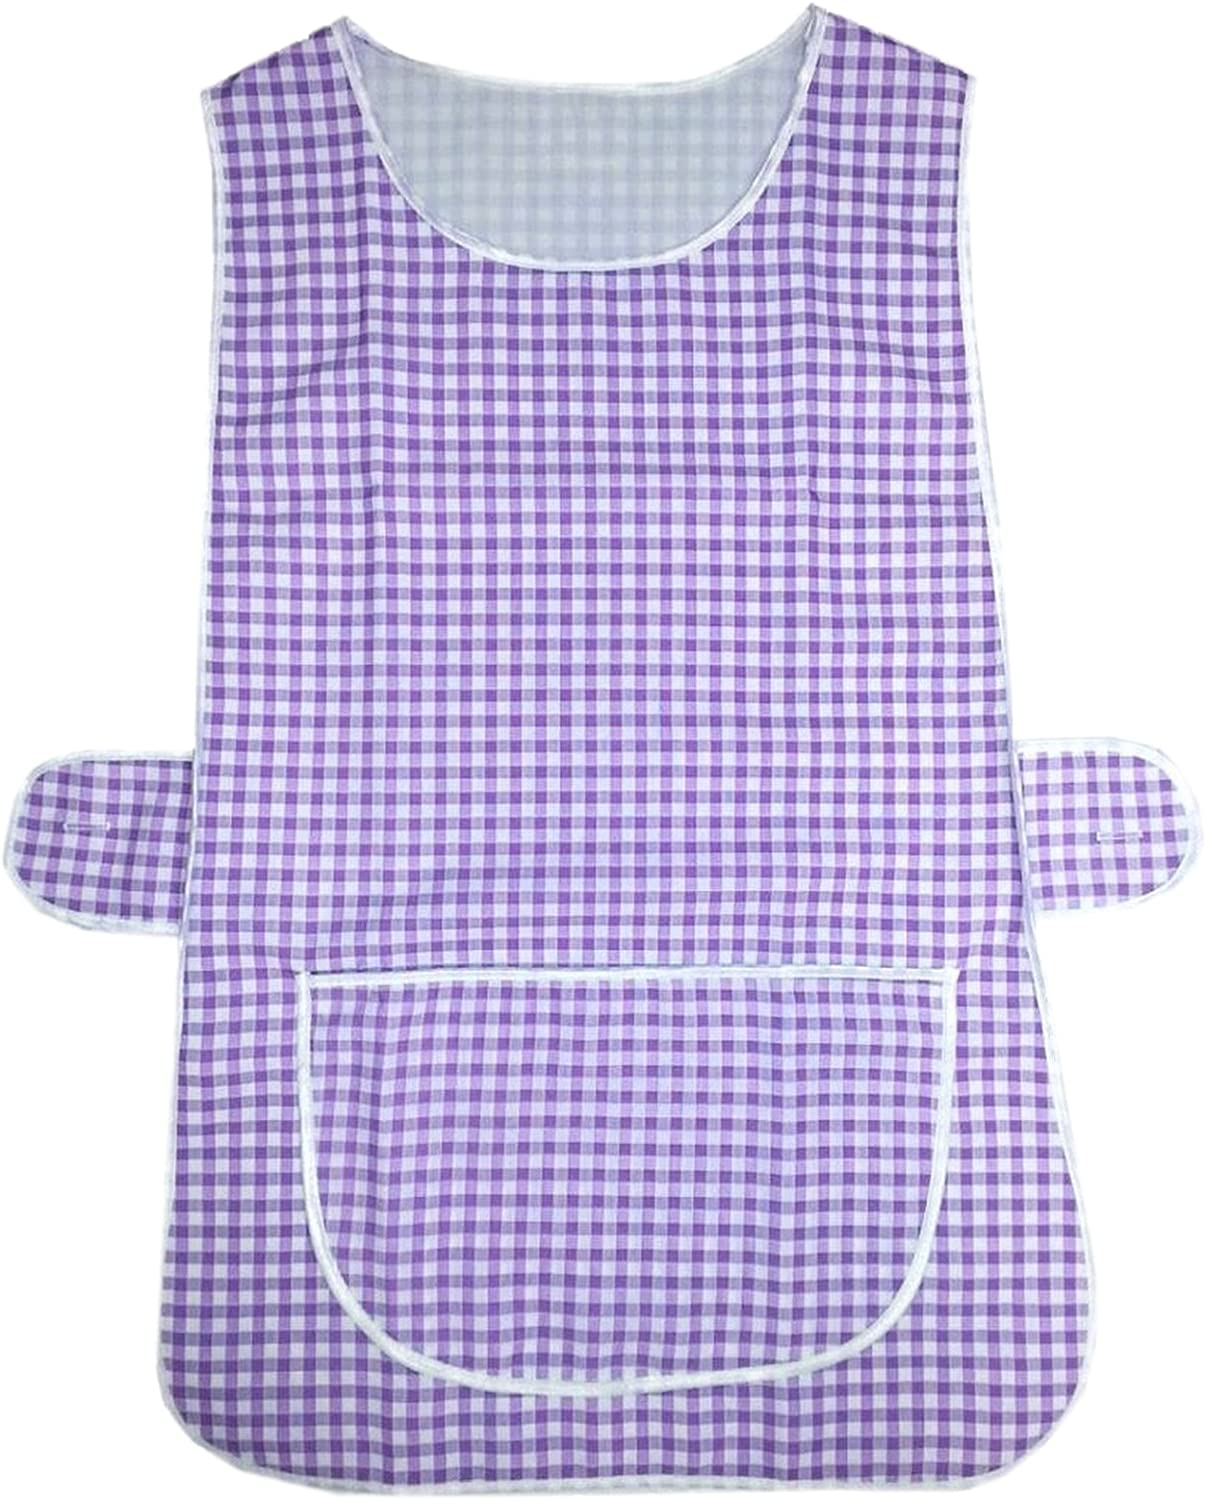 MyShoeStore Check Tabard Ladies Womens Home Work Kitchen Cleaning Chef Catering Cleaners Workwear Overall Piping Edge Checkered Tabbard Apron Large Pocket Side Button Fastening